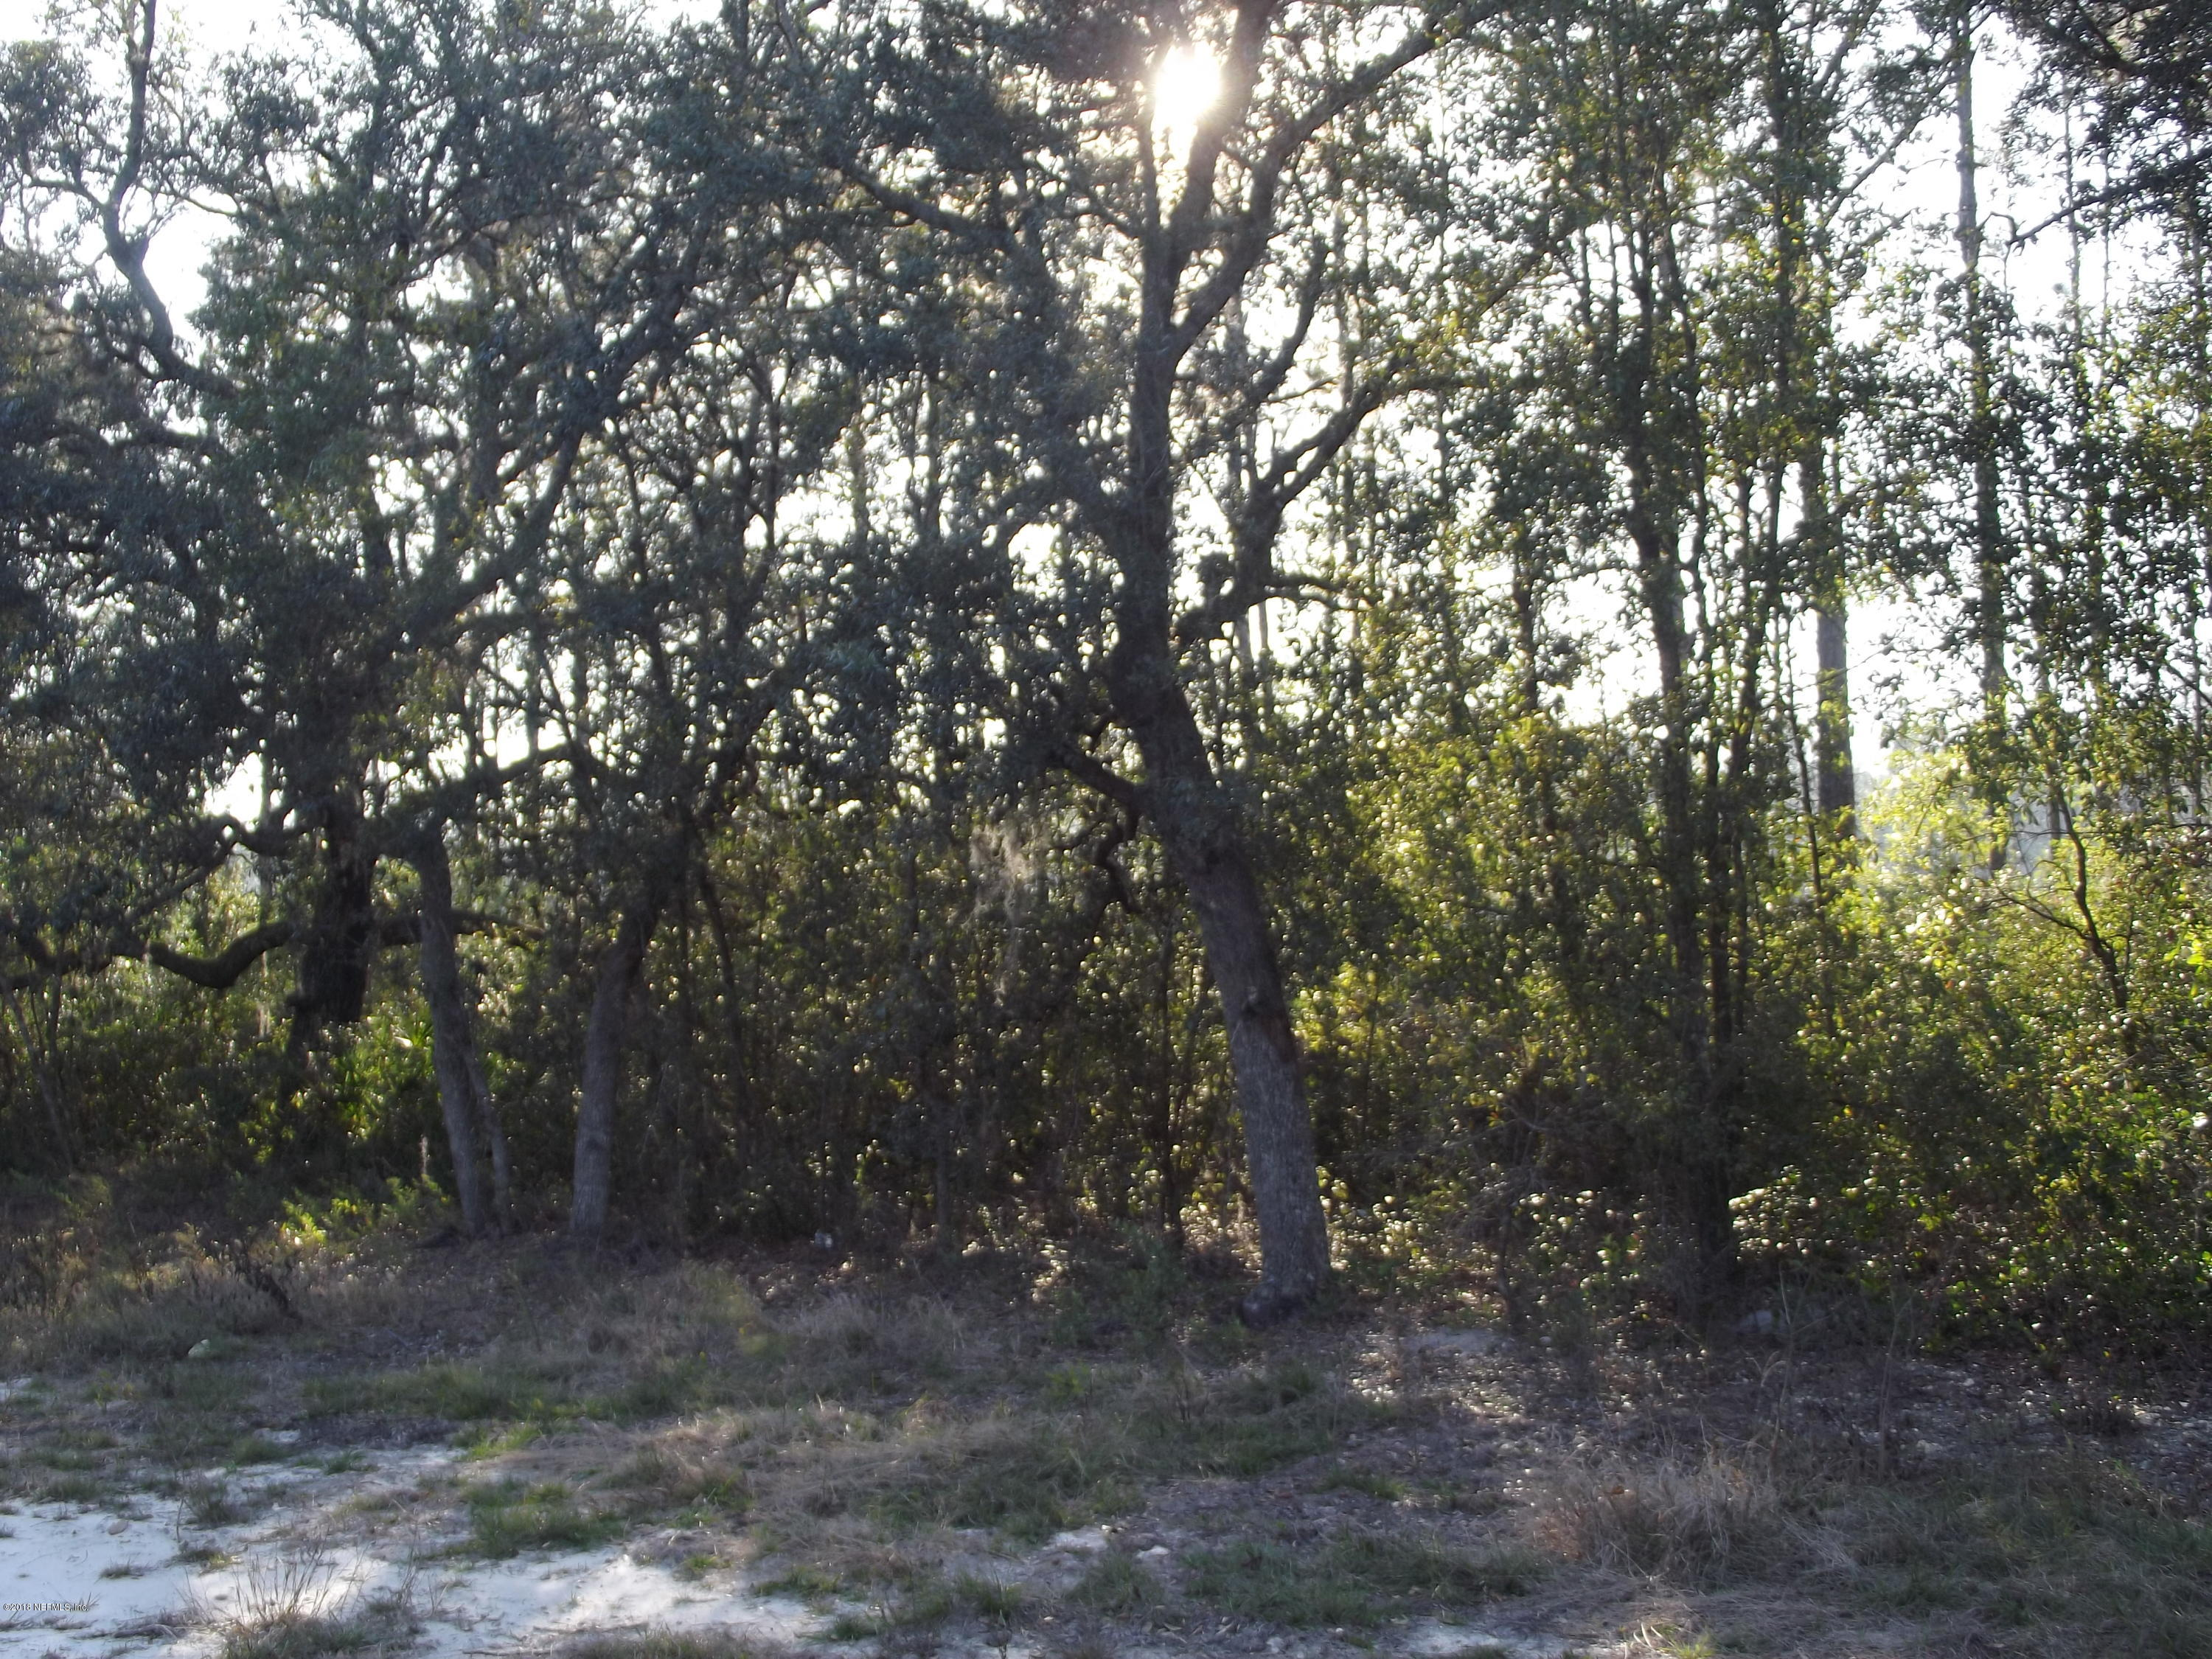 212 INDIANA, FLORAHOME, FLORIDA 32140, ,Vacant land,For sale,INDIANA,934361